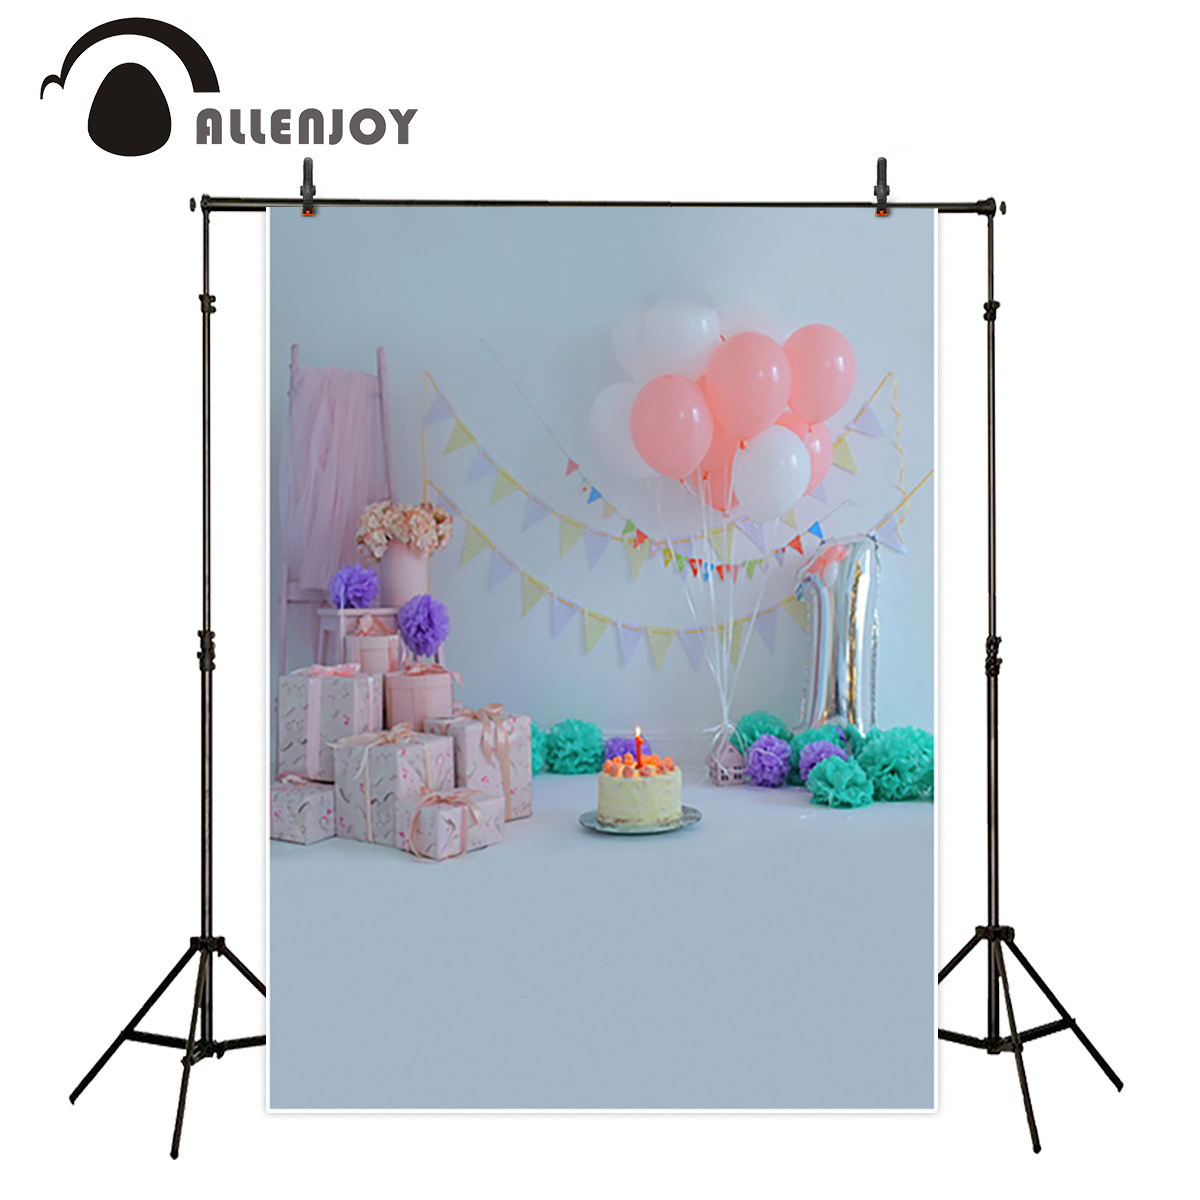 Allenjoy studio Photo background festive celebrate lovely gift for boy or girl birthday photocall cake beautiful backdrop